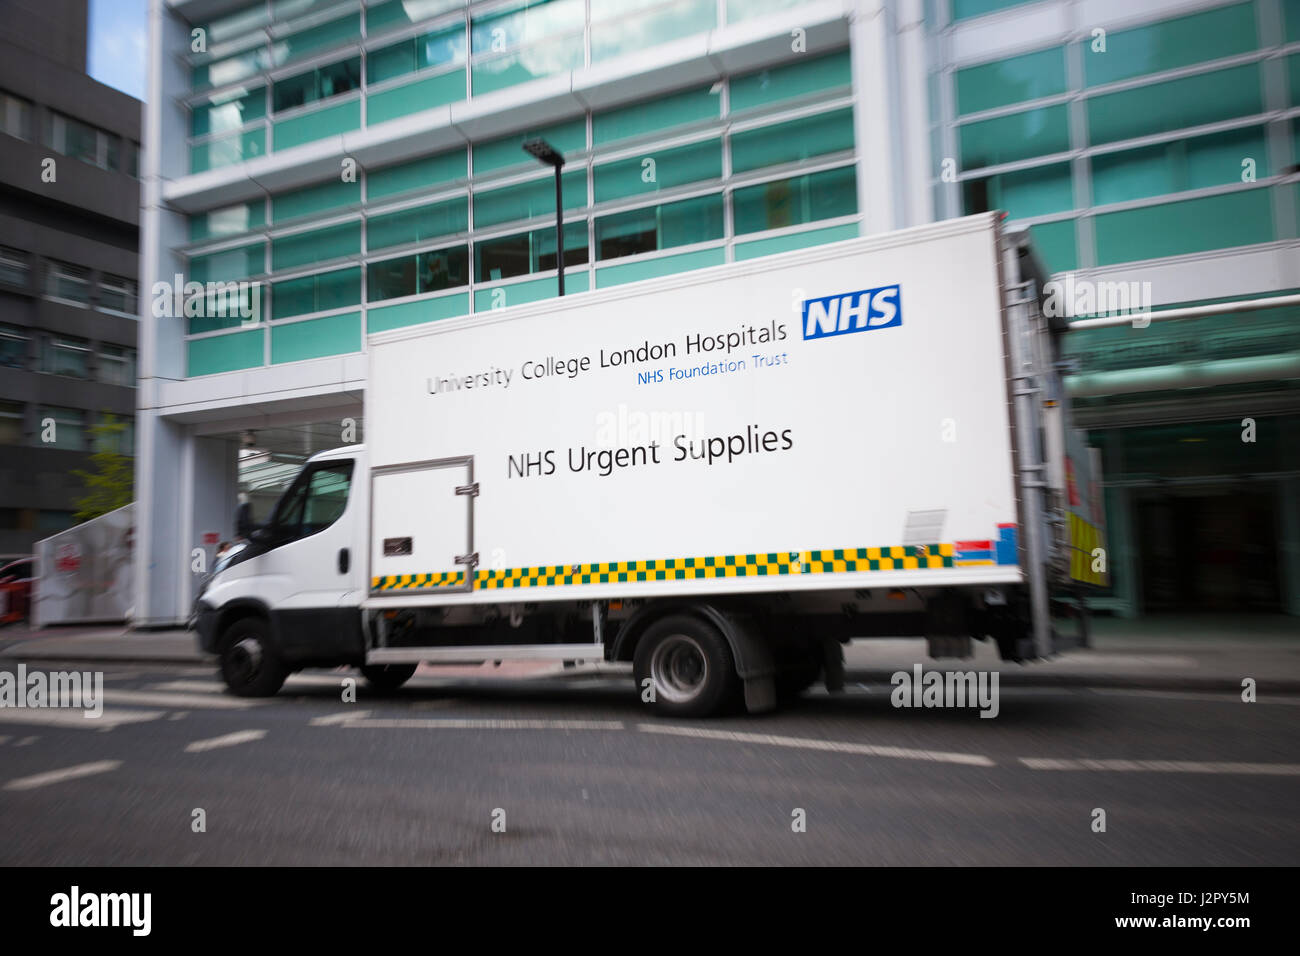 Truck / van / Lorry /carrying urgent medical supplies for the NHS to University College Hospital in London. UK - Stock Image